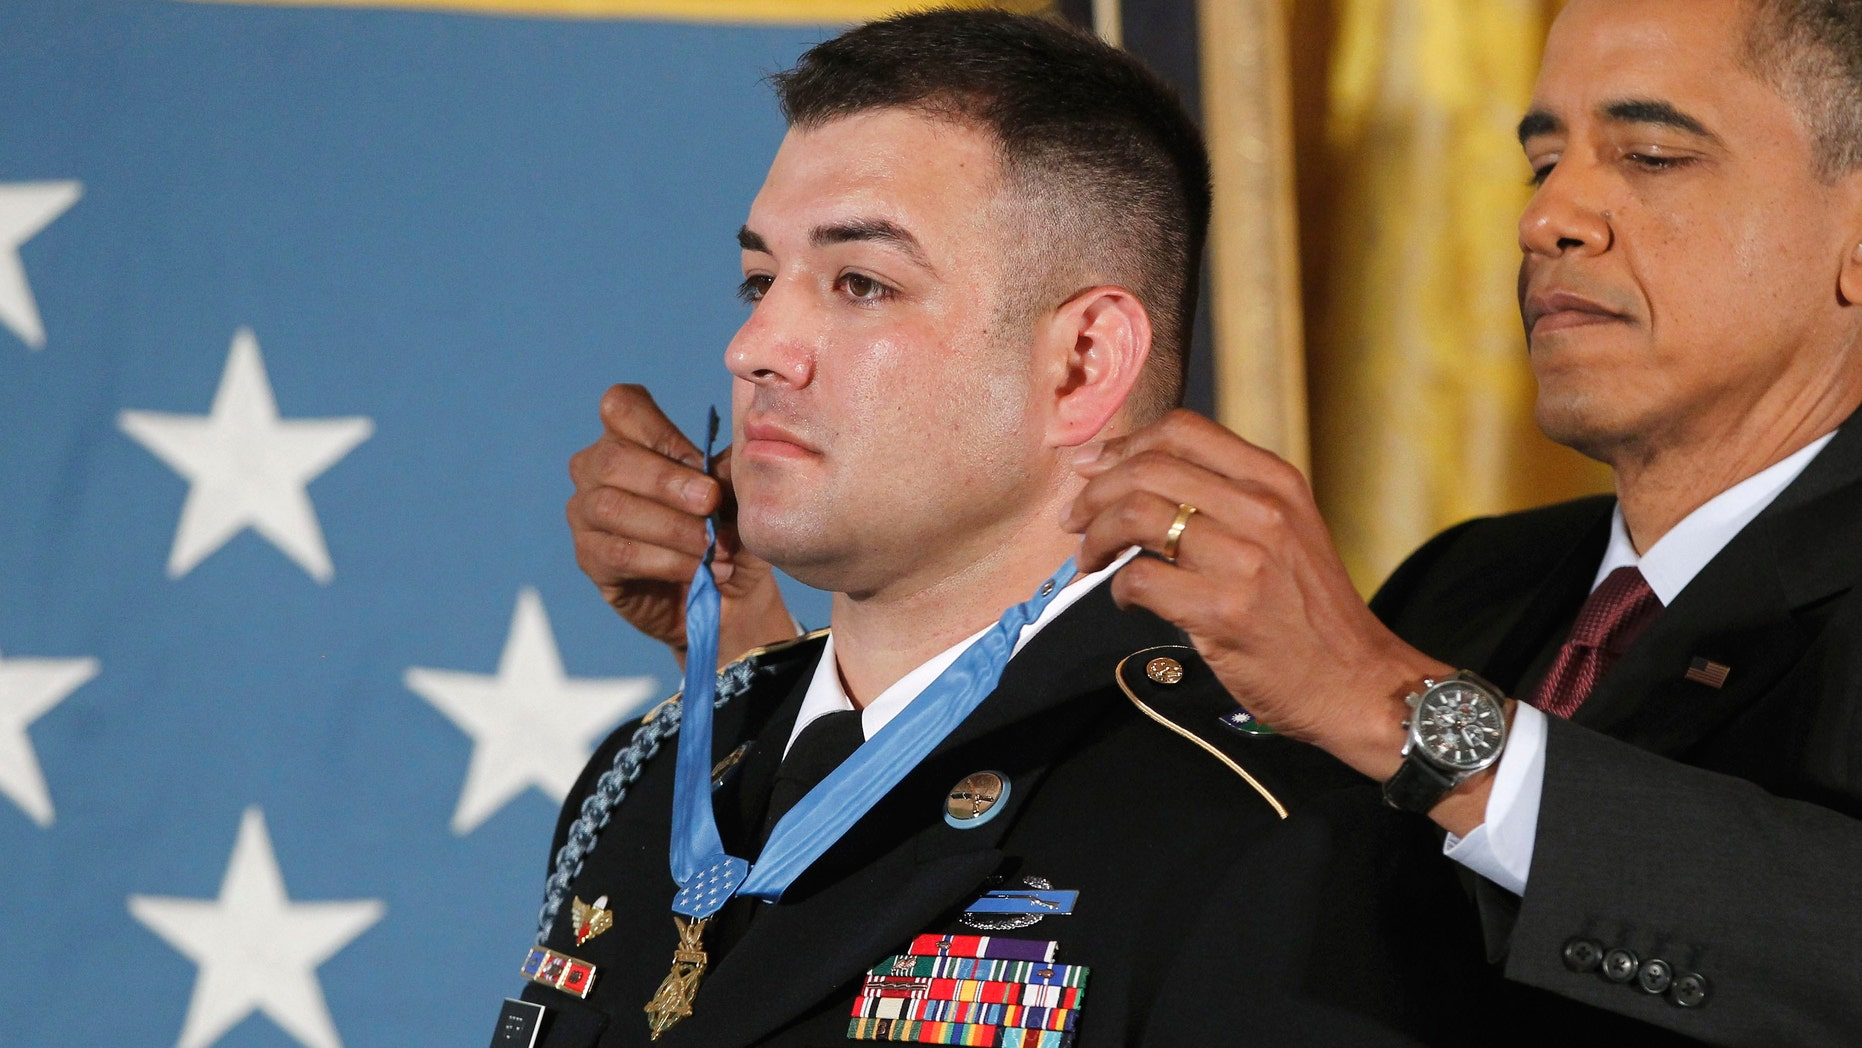 President Barack Obama awards US Army Sgt. First Class Leroy Arthur Petry, from Santa Fe, N.M., the Medal of Honor during a ceremony in the East Room of the White House in Washington.